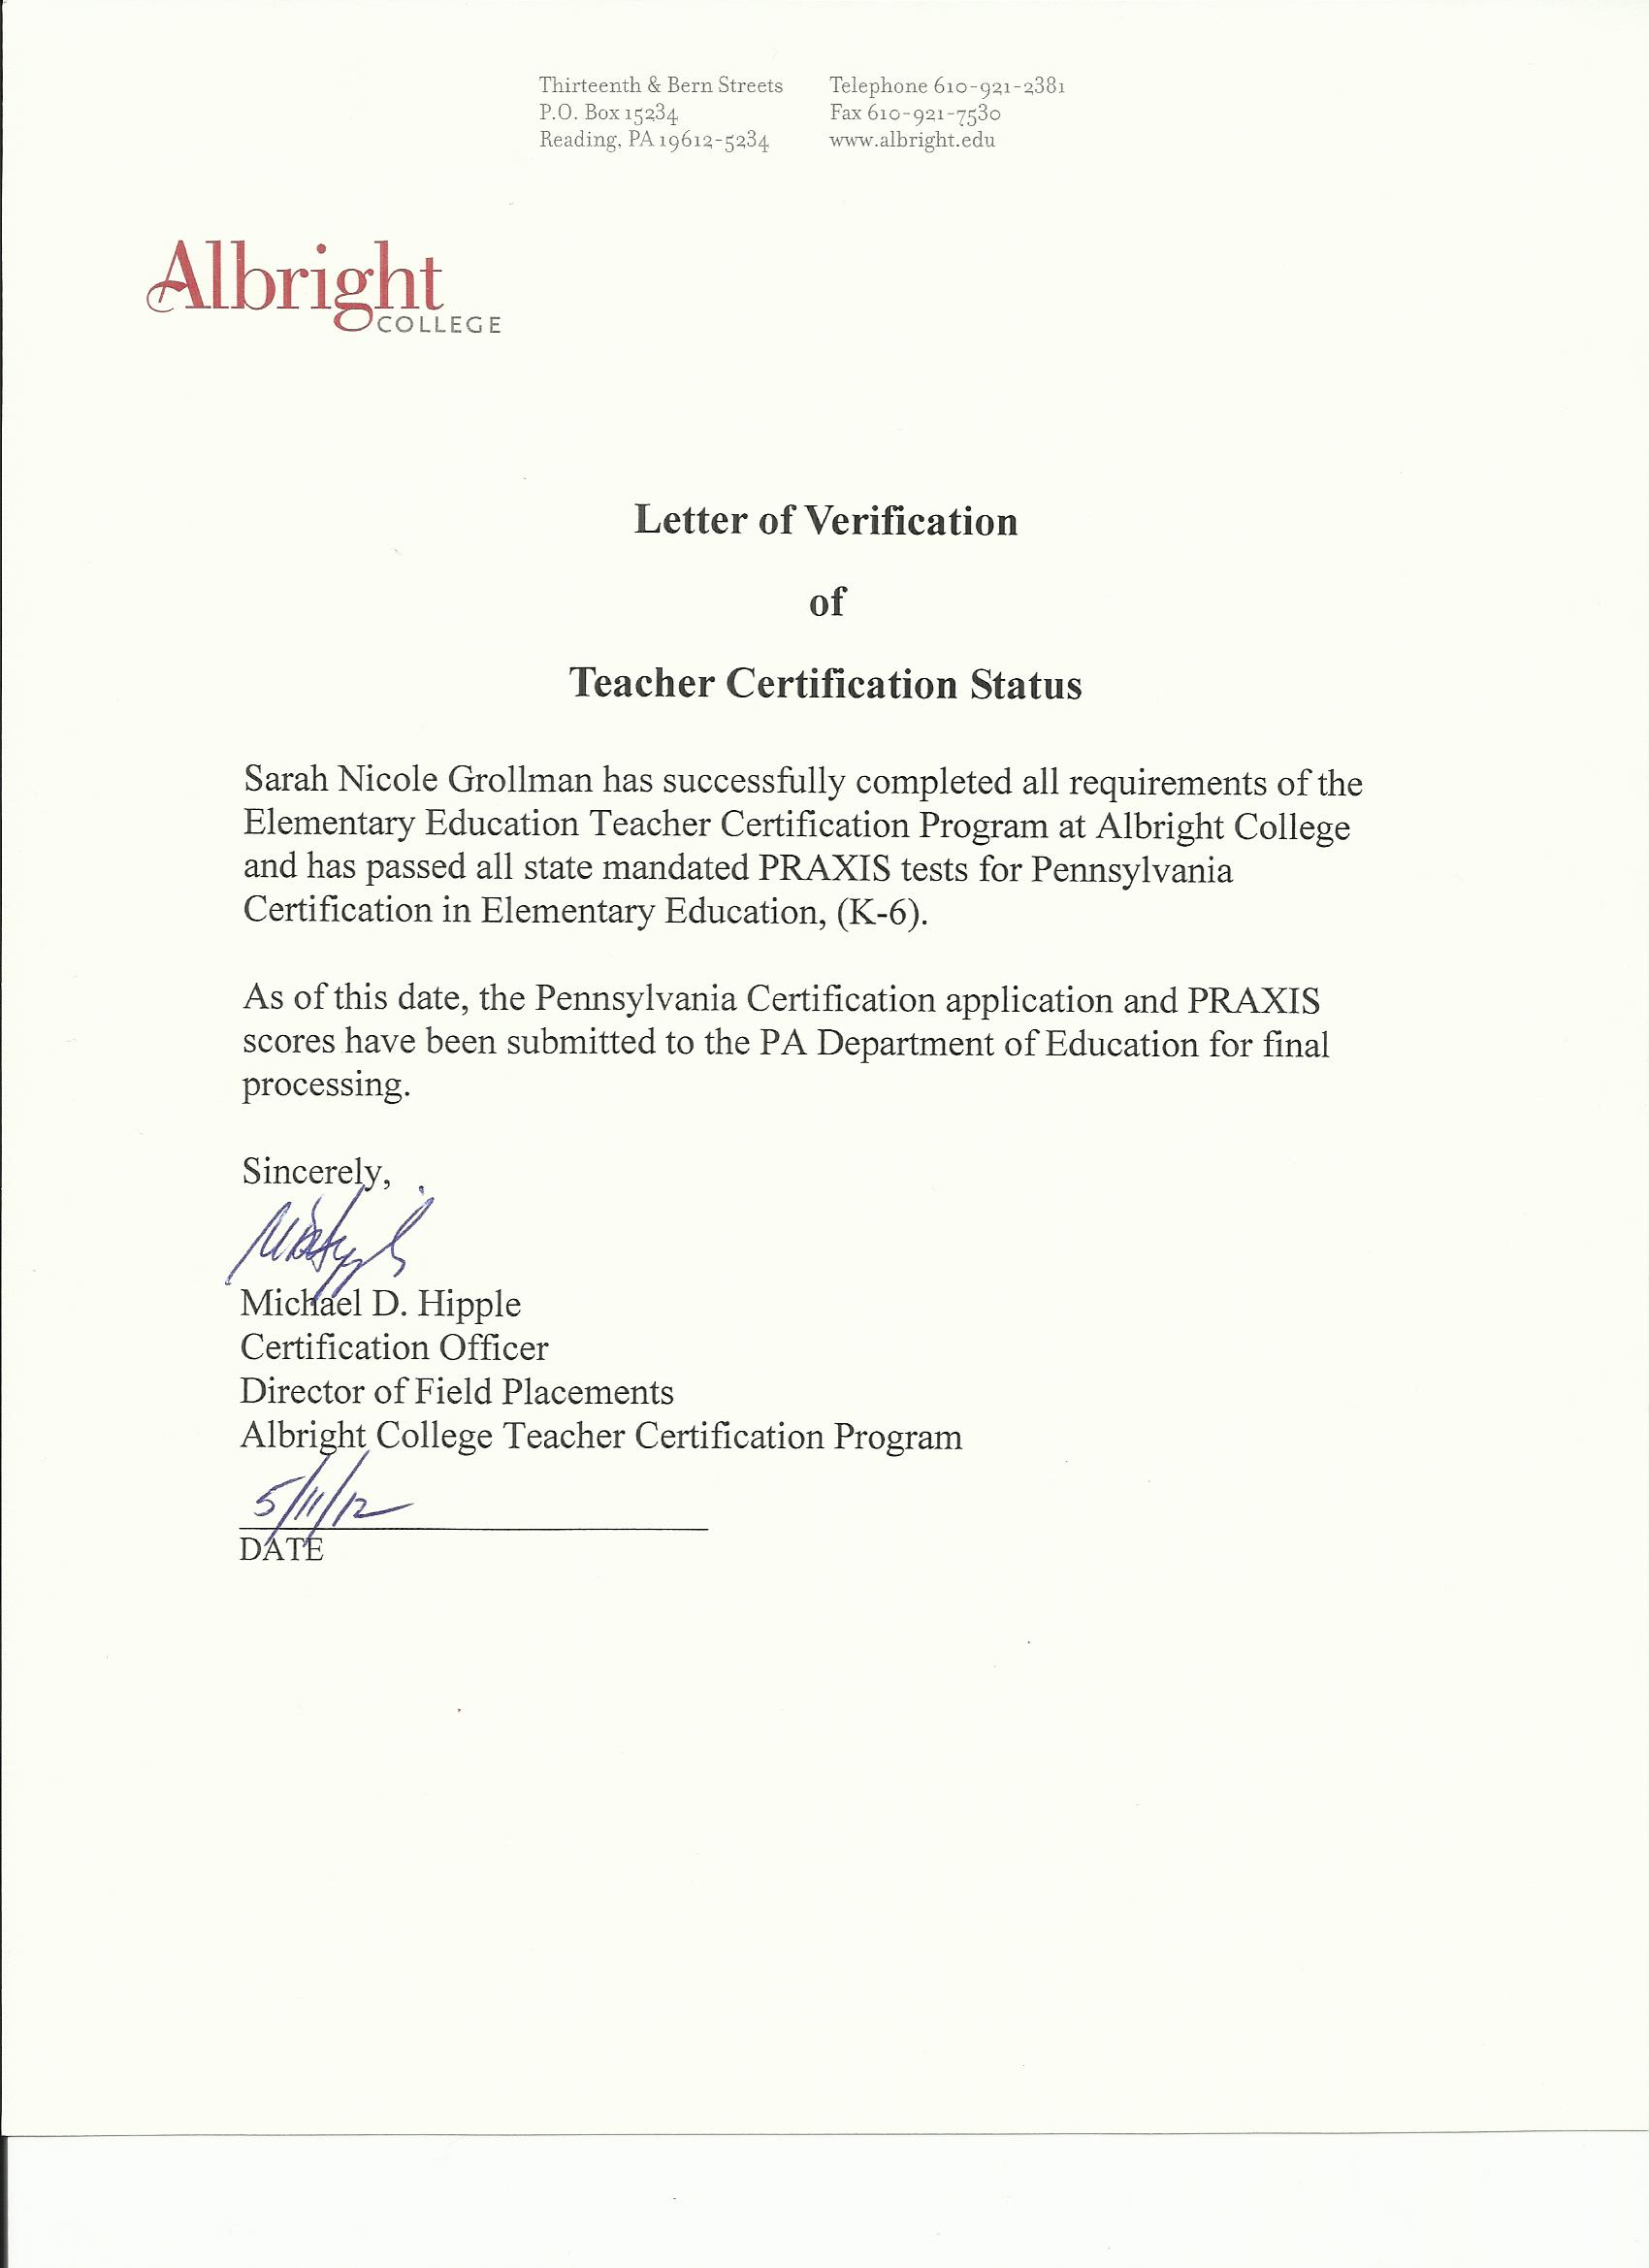 Professional development certification verification letter yelopaper Images